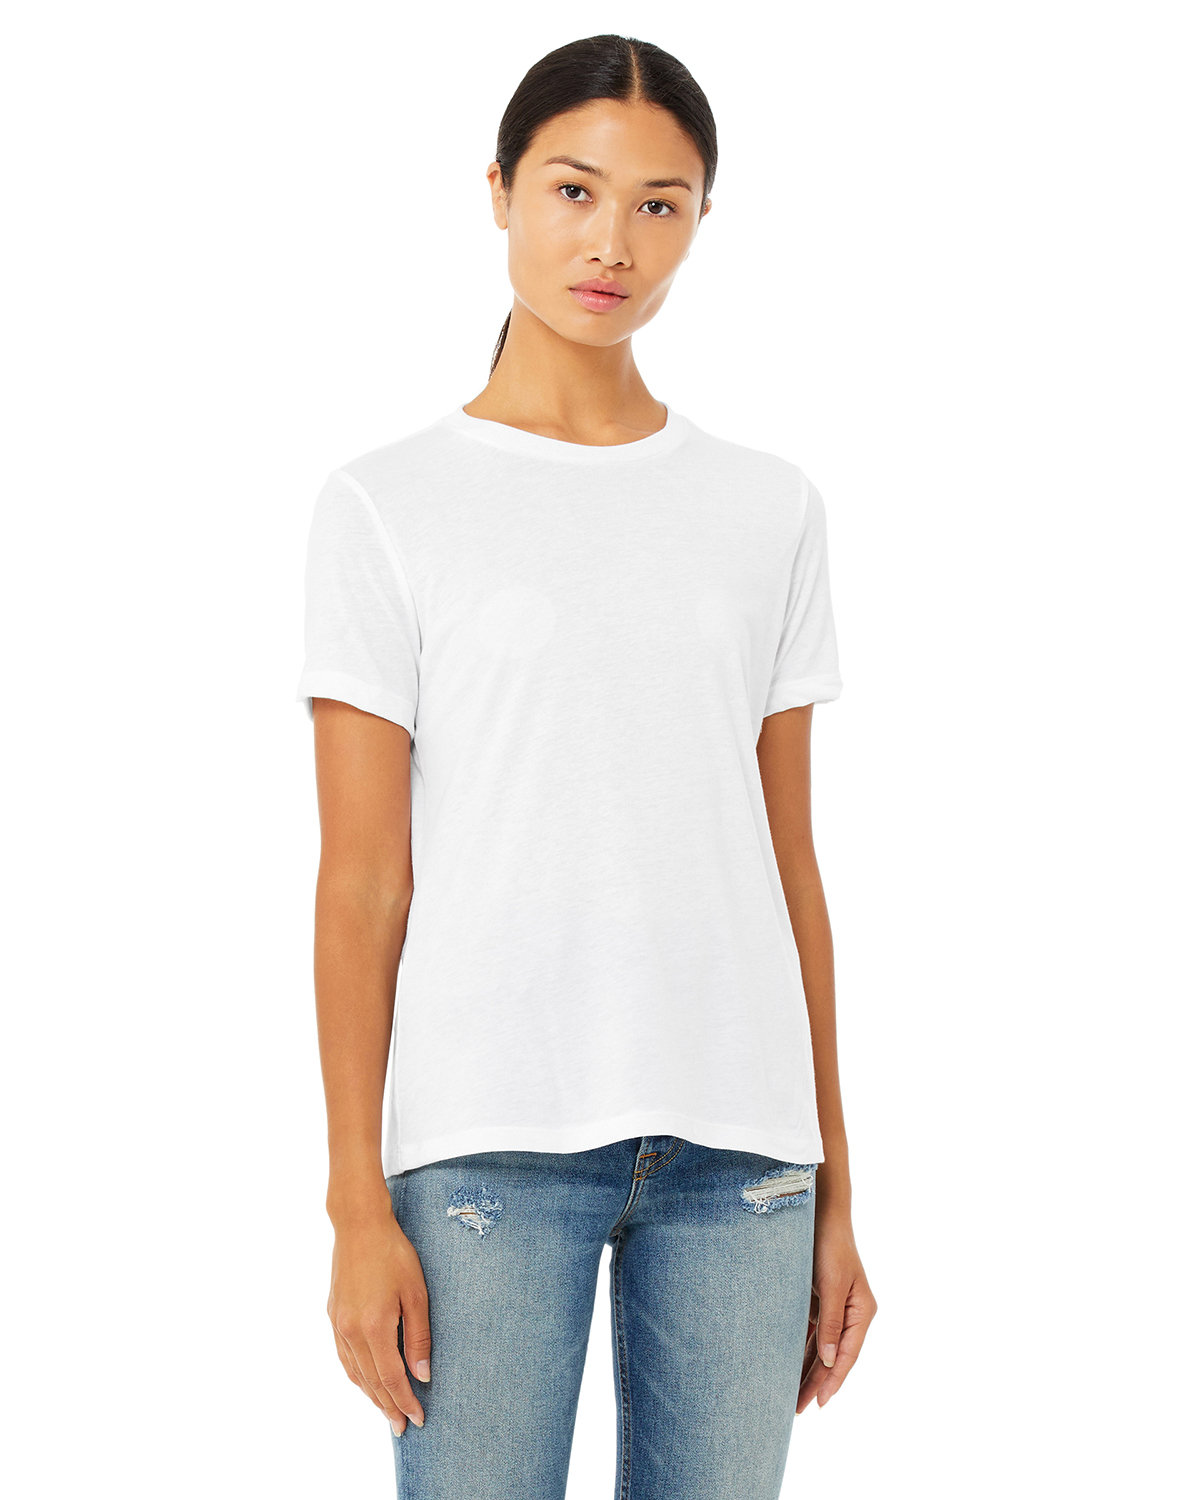 Bella + Canvas Ladies' Relaxed Triblend T-Shirt SOLID WHT TRBLND